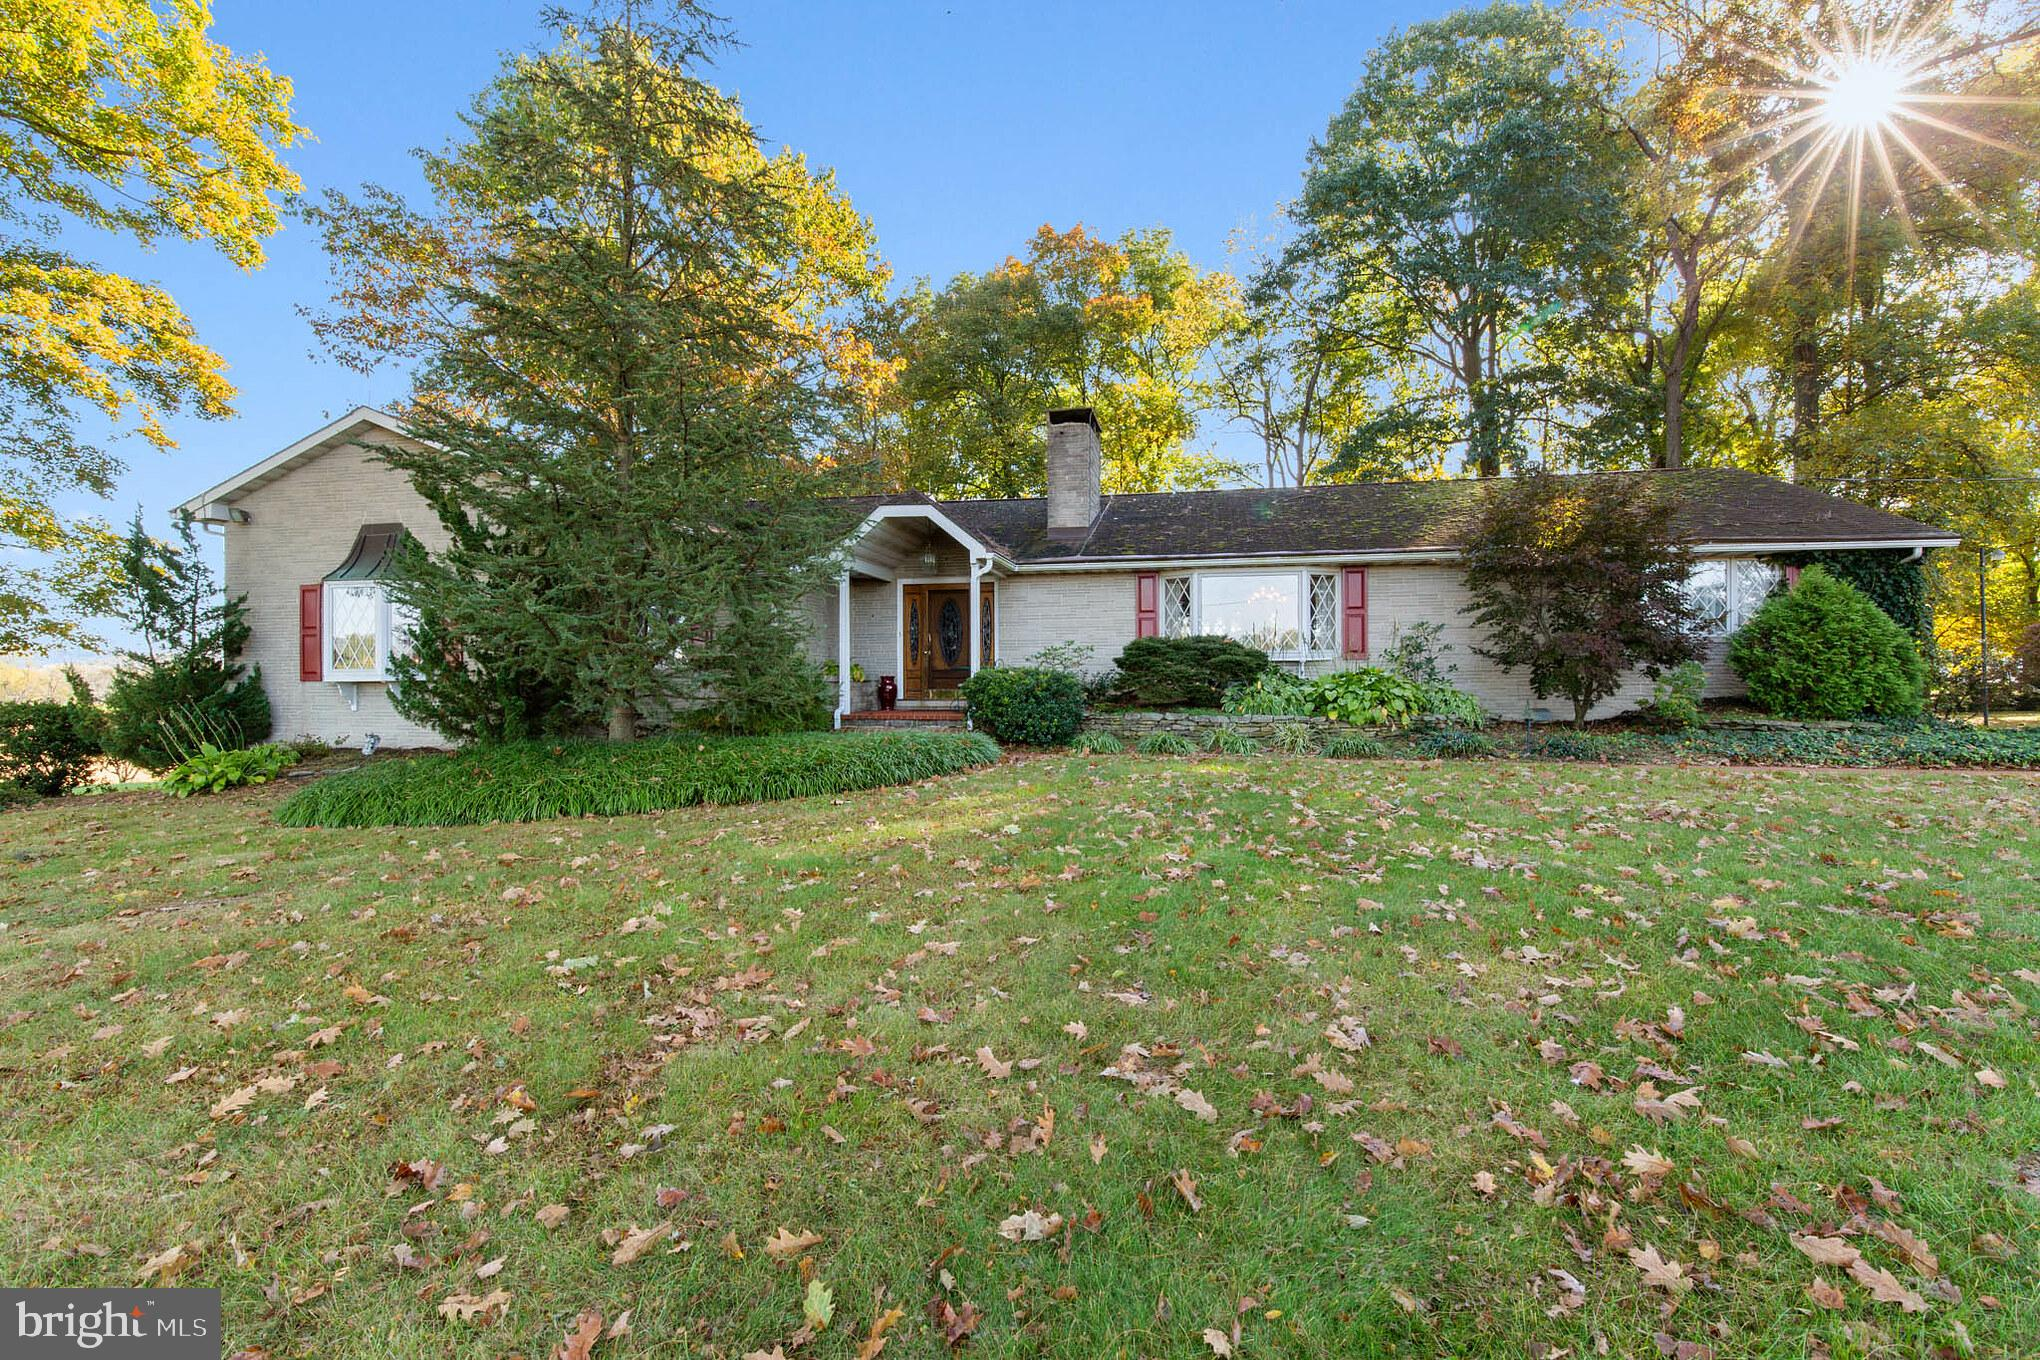 191 SNYDER ROAD, OLEY, PA 19547